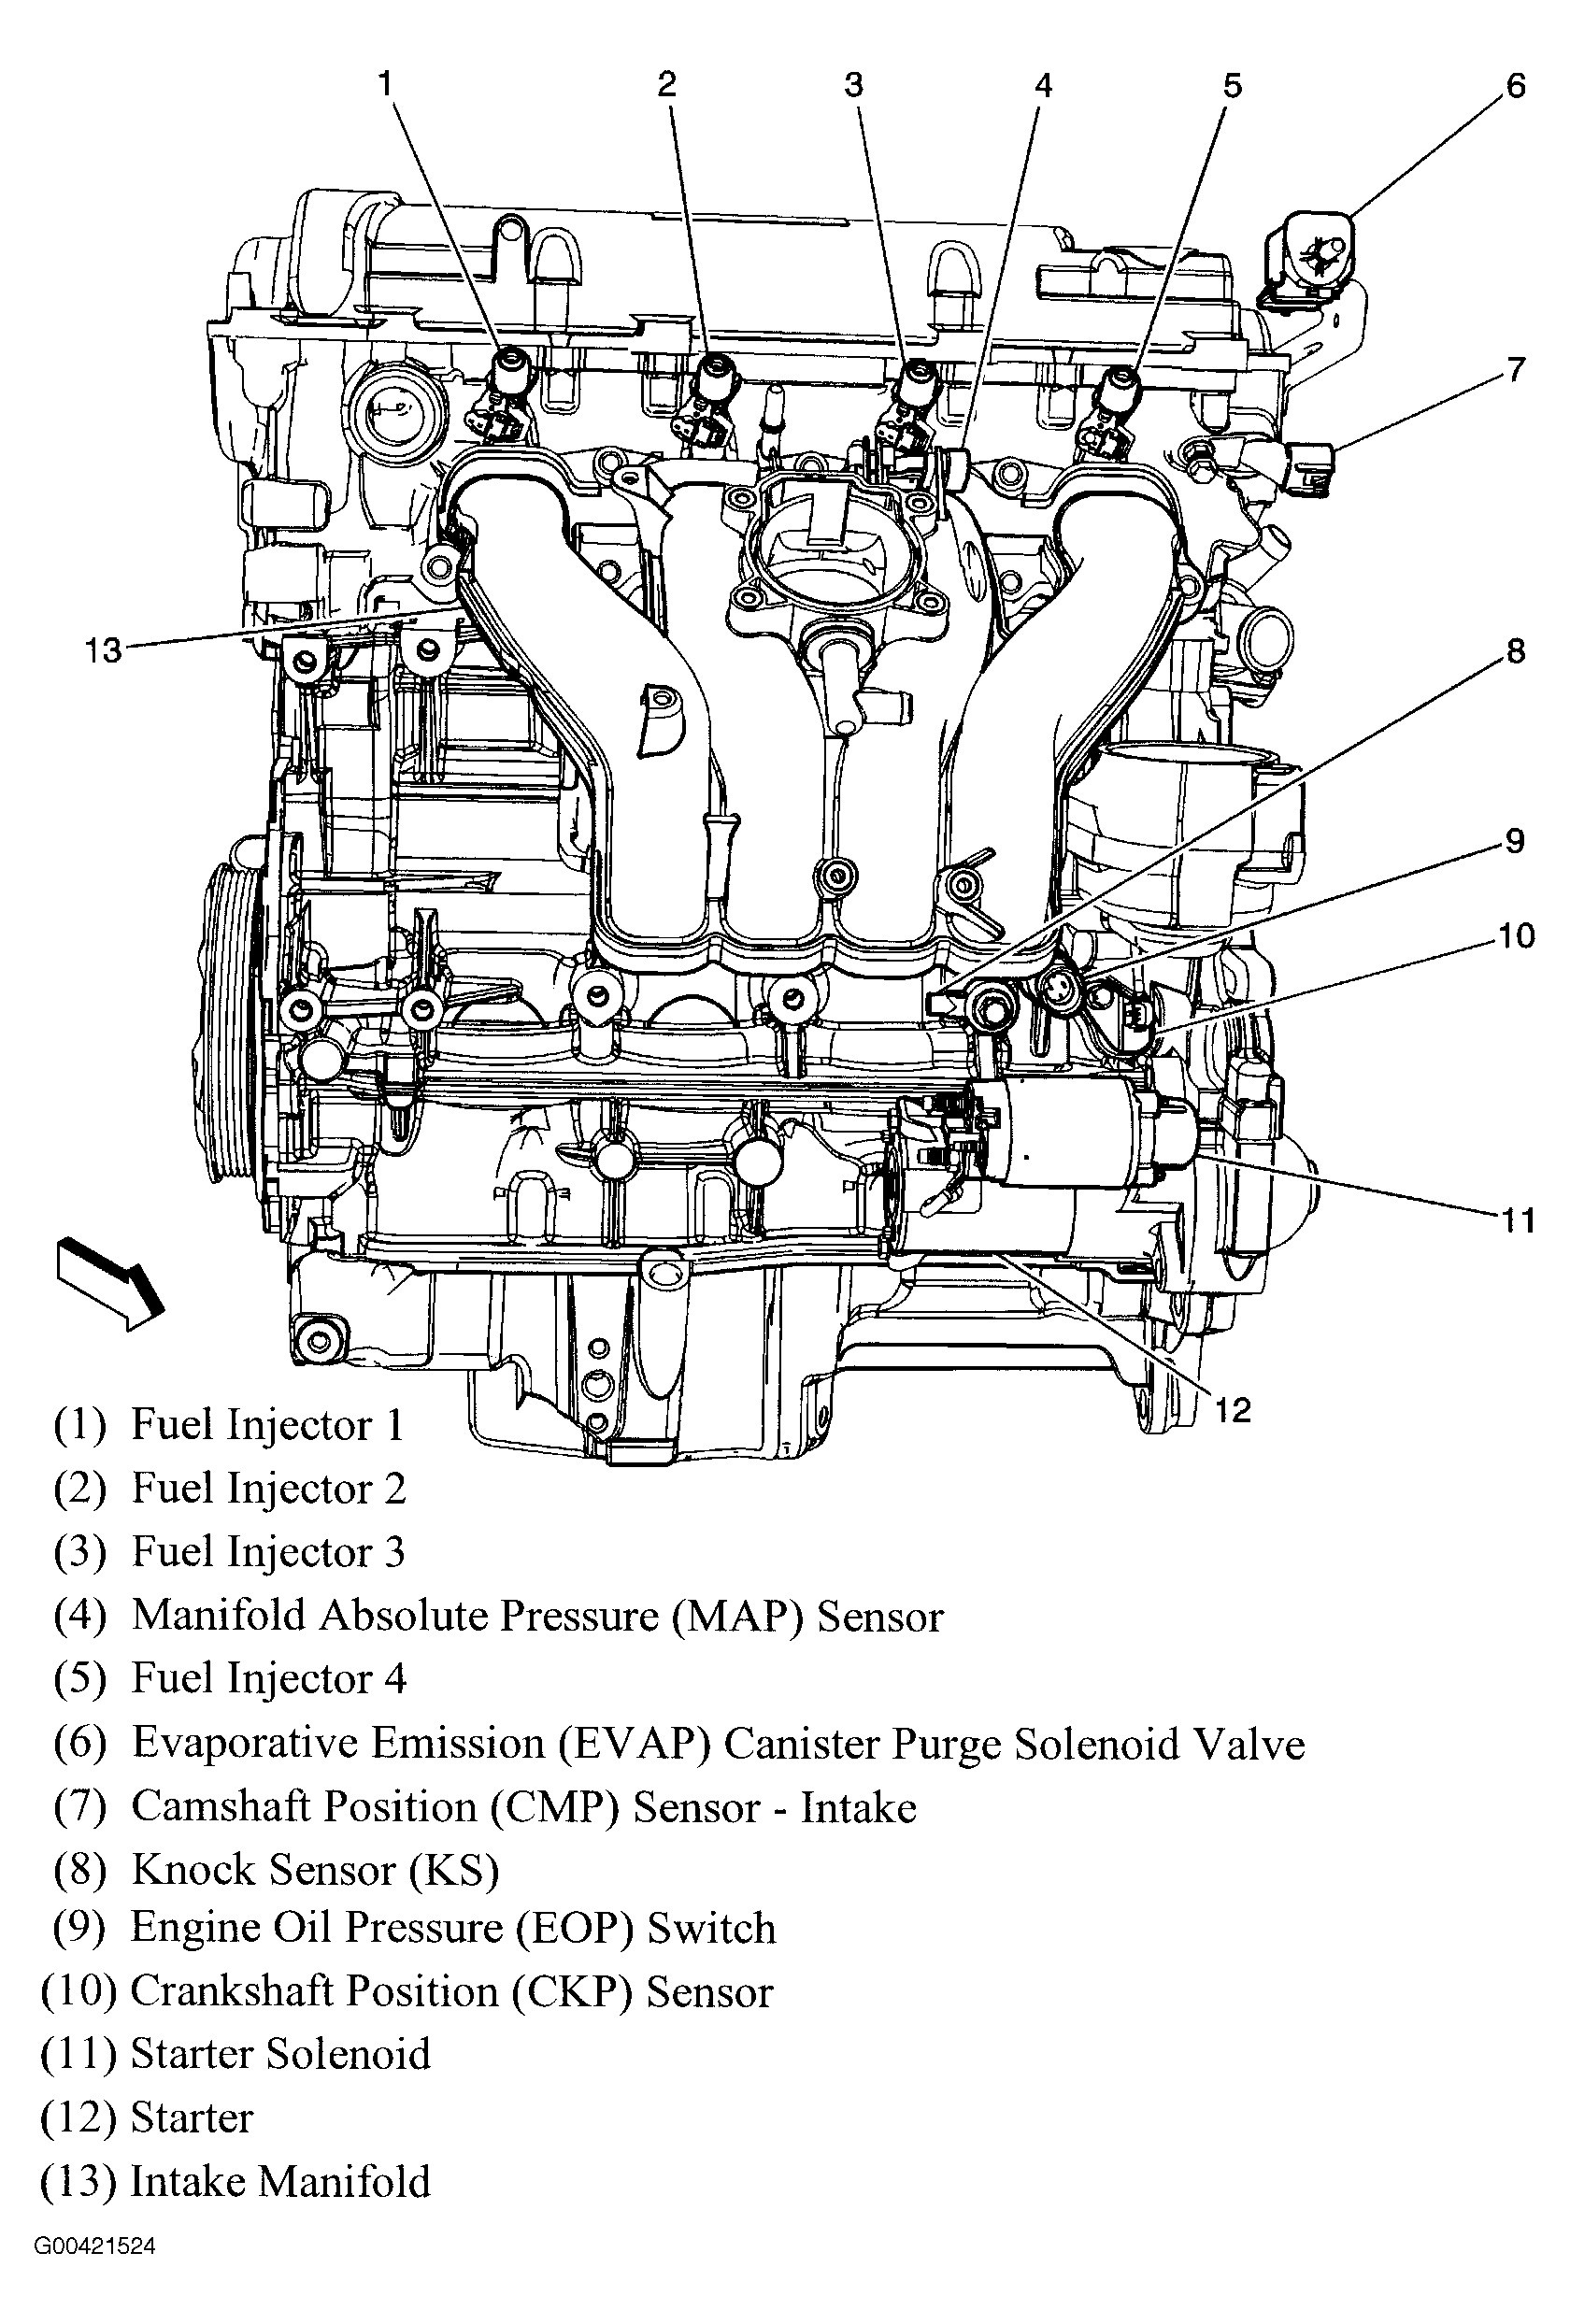 chevrolet cruze engine diagram everything wiring diagram2012 chevy cruze camshaft wiring diagram wiring diagrams 2013 chevy cruze engine diagram 2012 chevy cruze